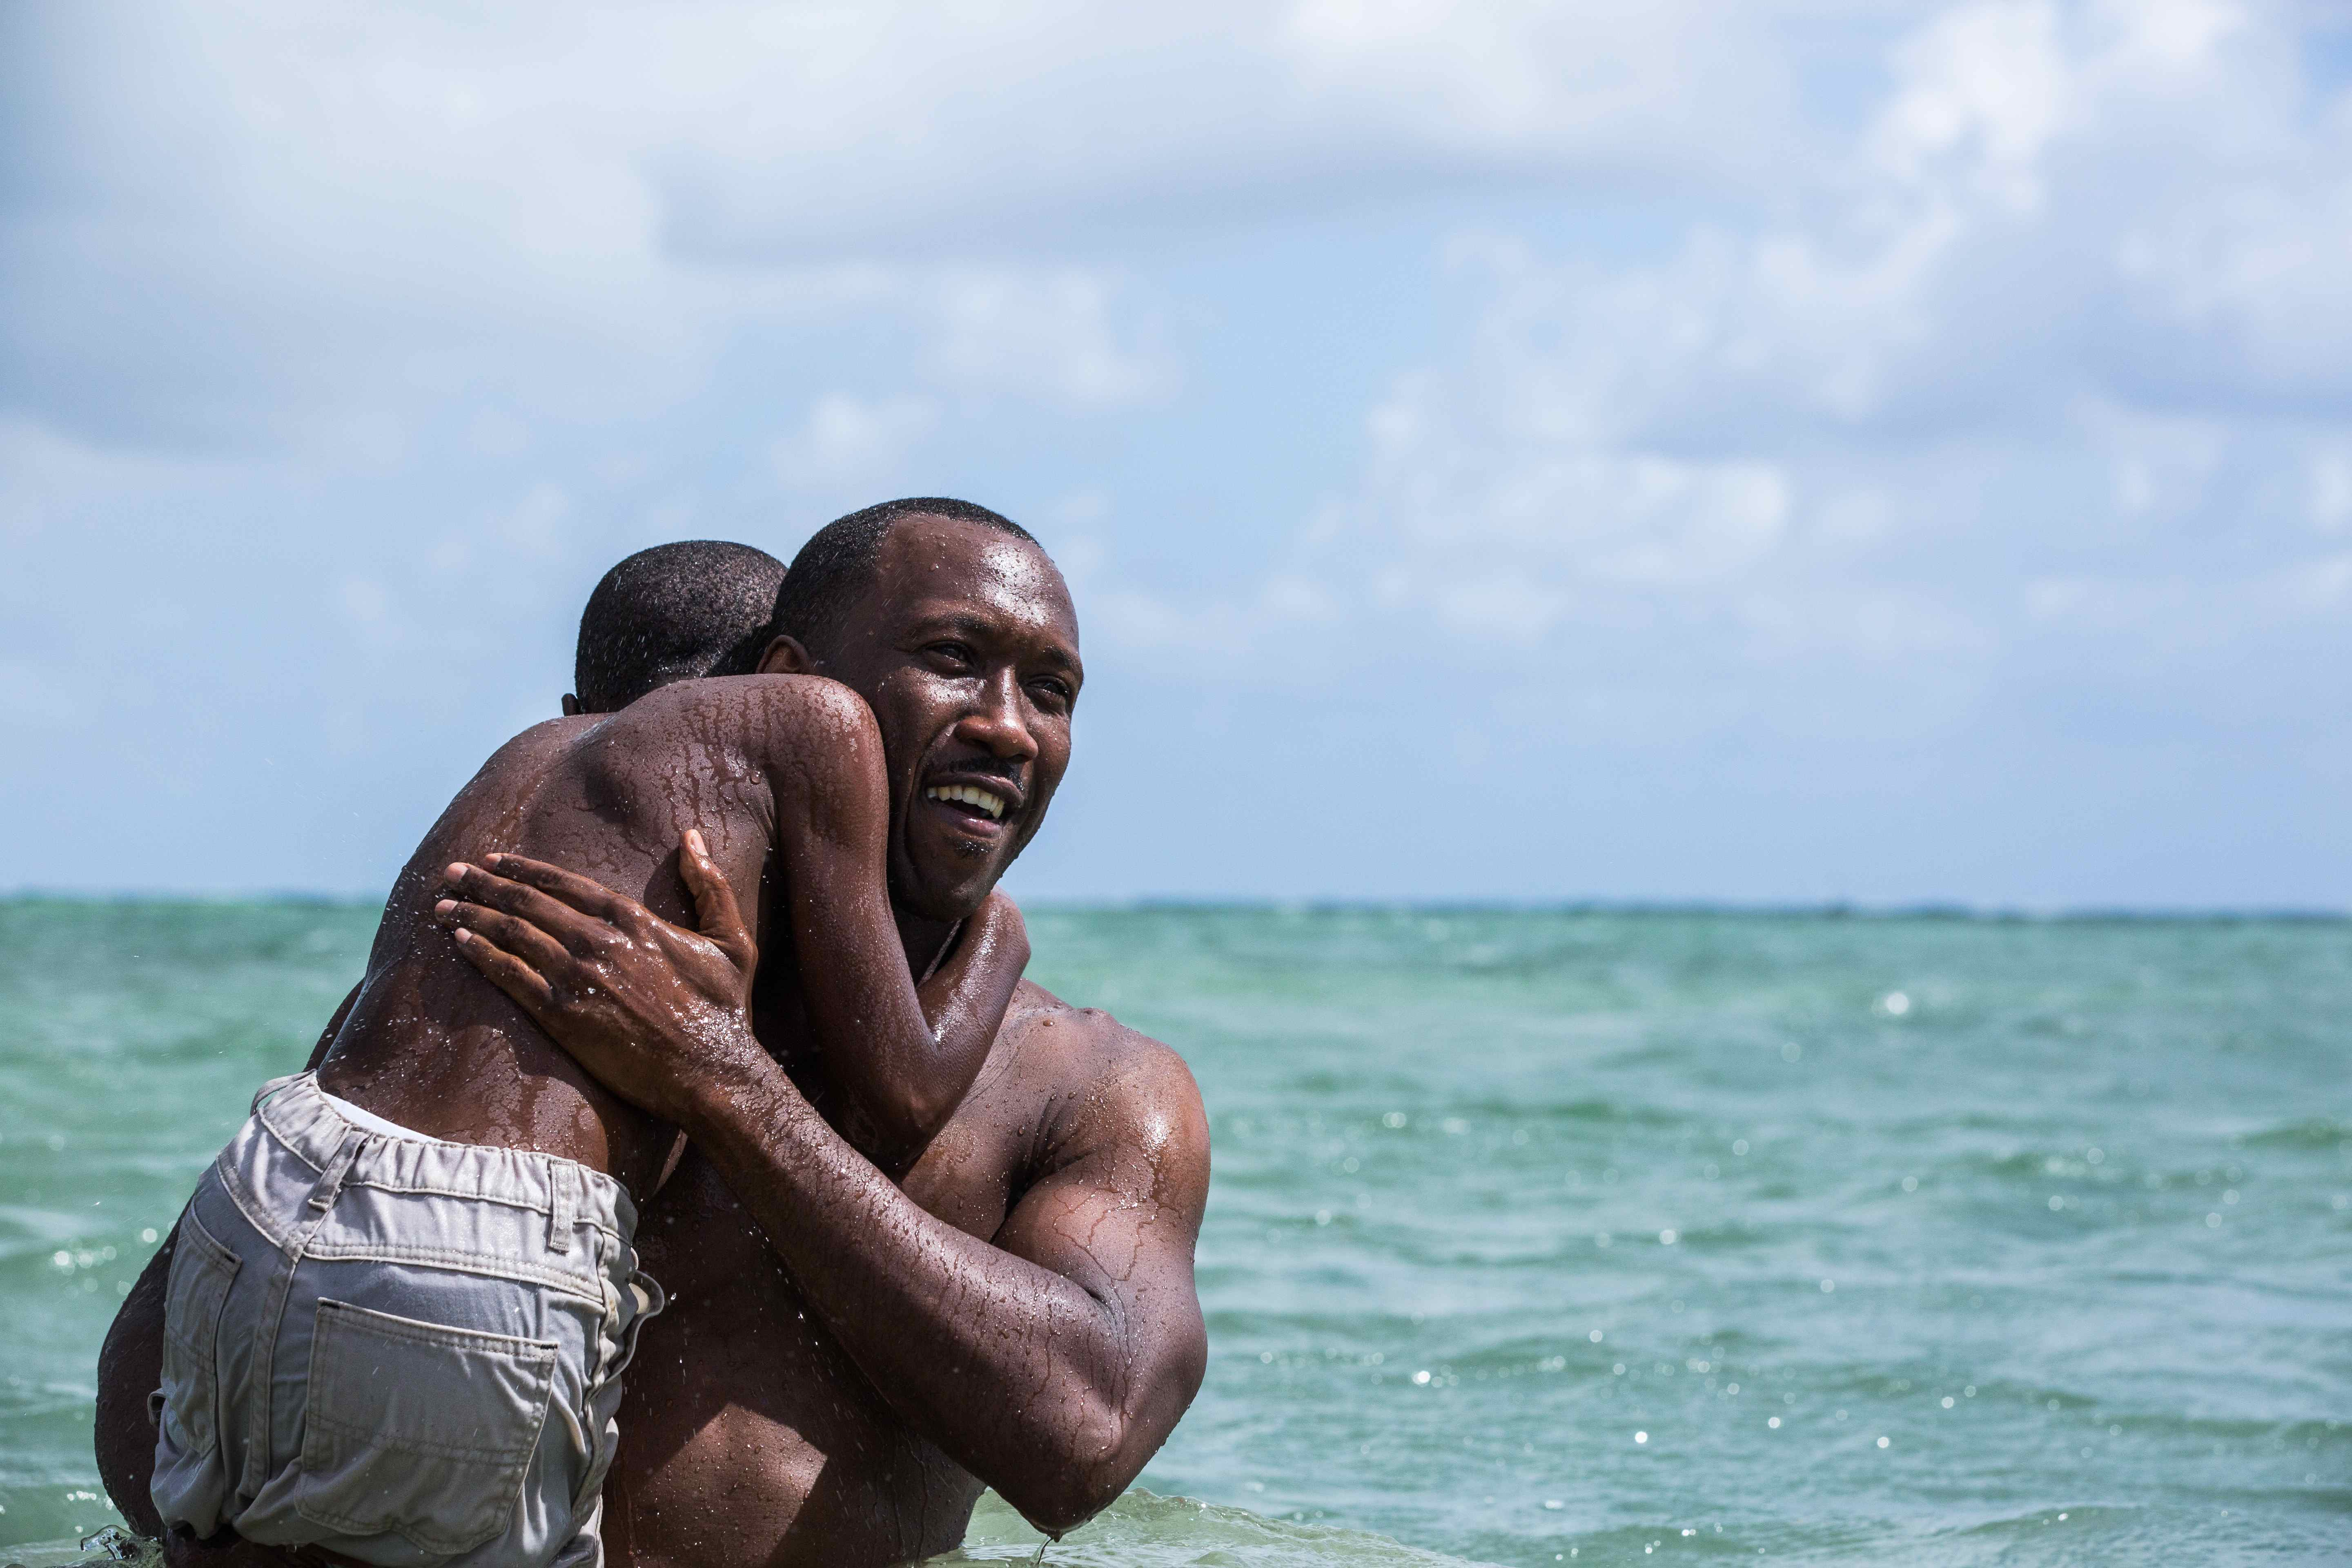 A shot from Moonlight